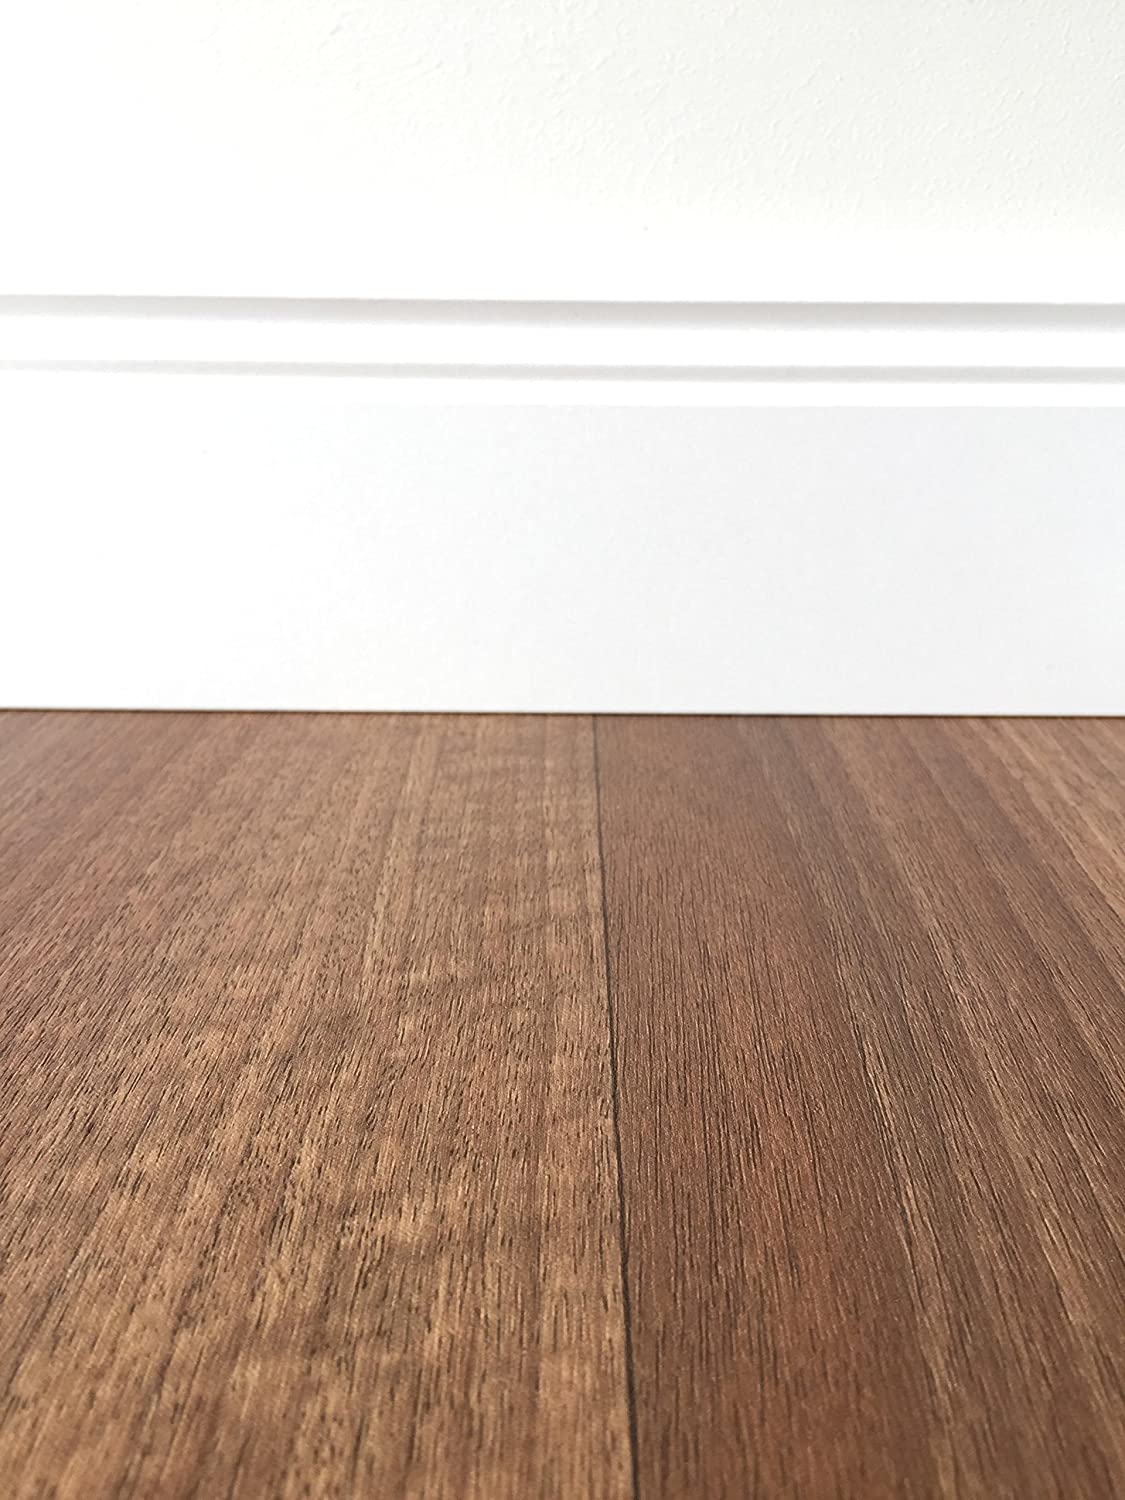 Pvc Flooring Wood Effect Red Brown Vinyl Floor 2 M Wide 5 M Long Suitable For Underfloor Heating Vinyl Planks Durable Easy To Clean Floor Coating For Commercial Or Residential Amazon Co Uk Diy Tools